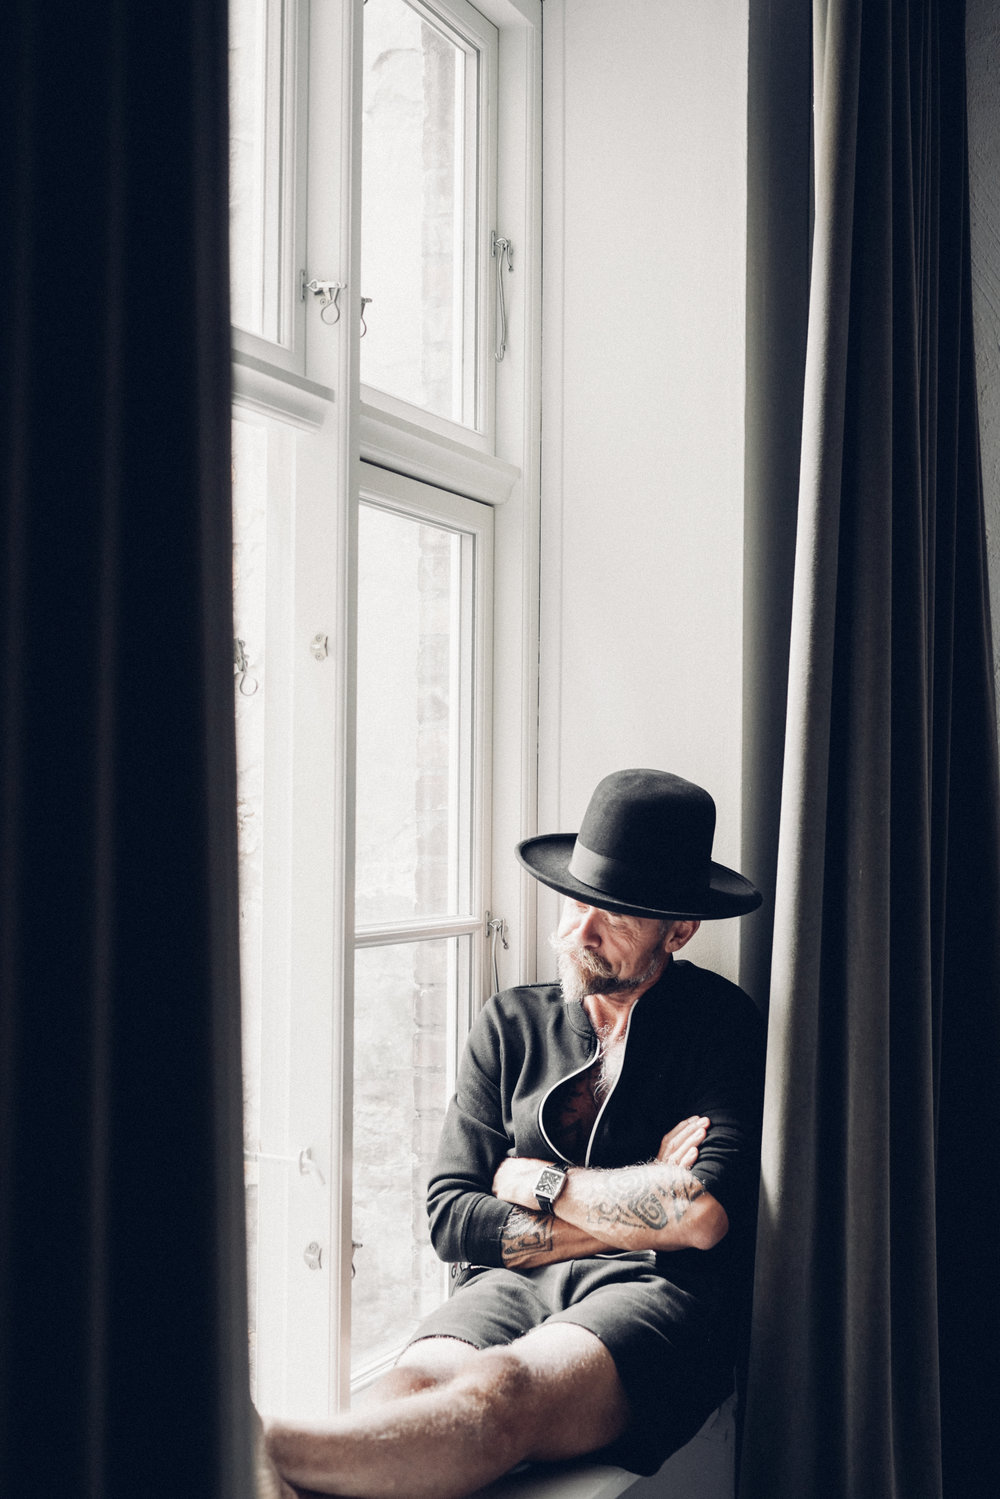 Morten Angelo sitting by the window